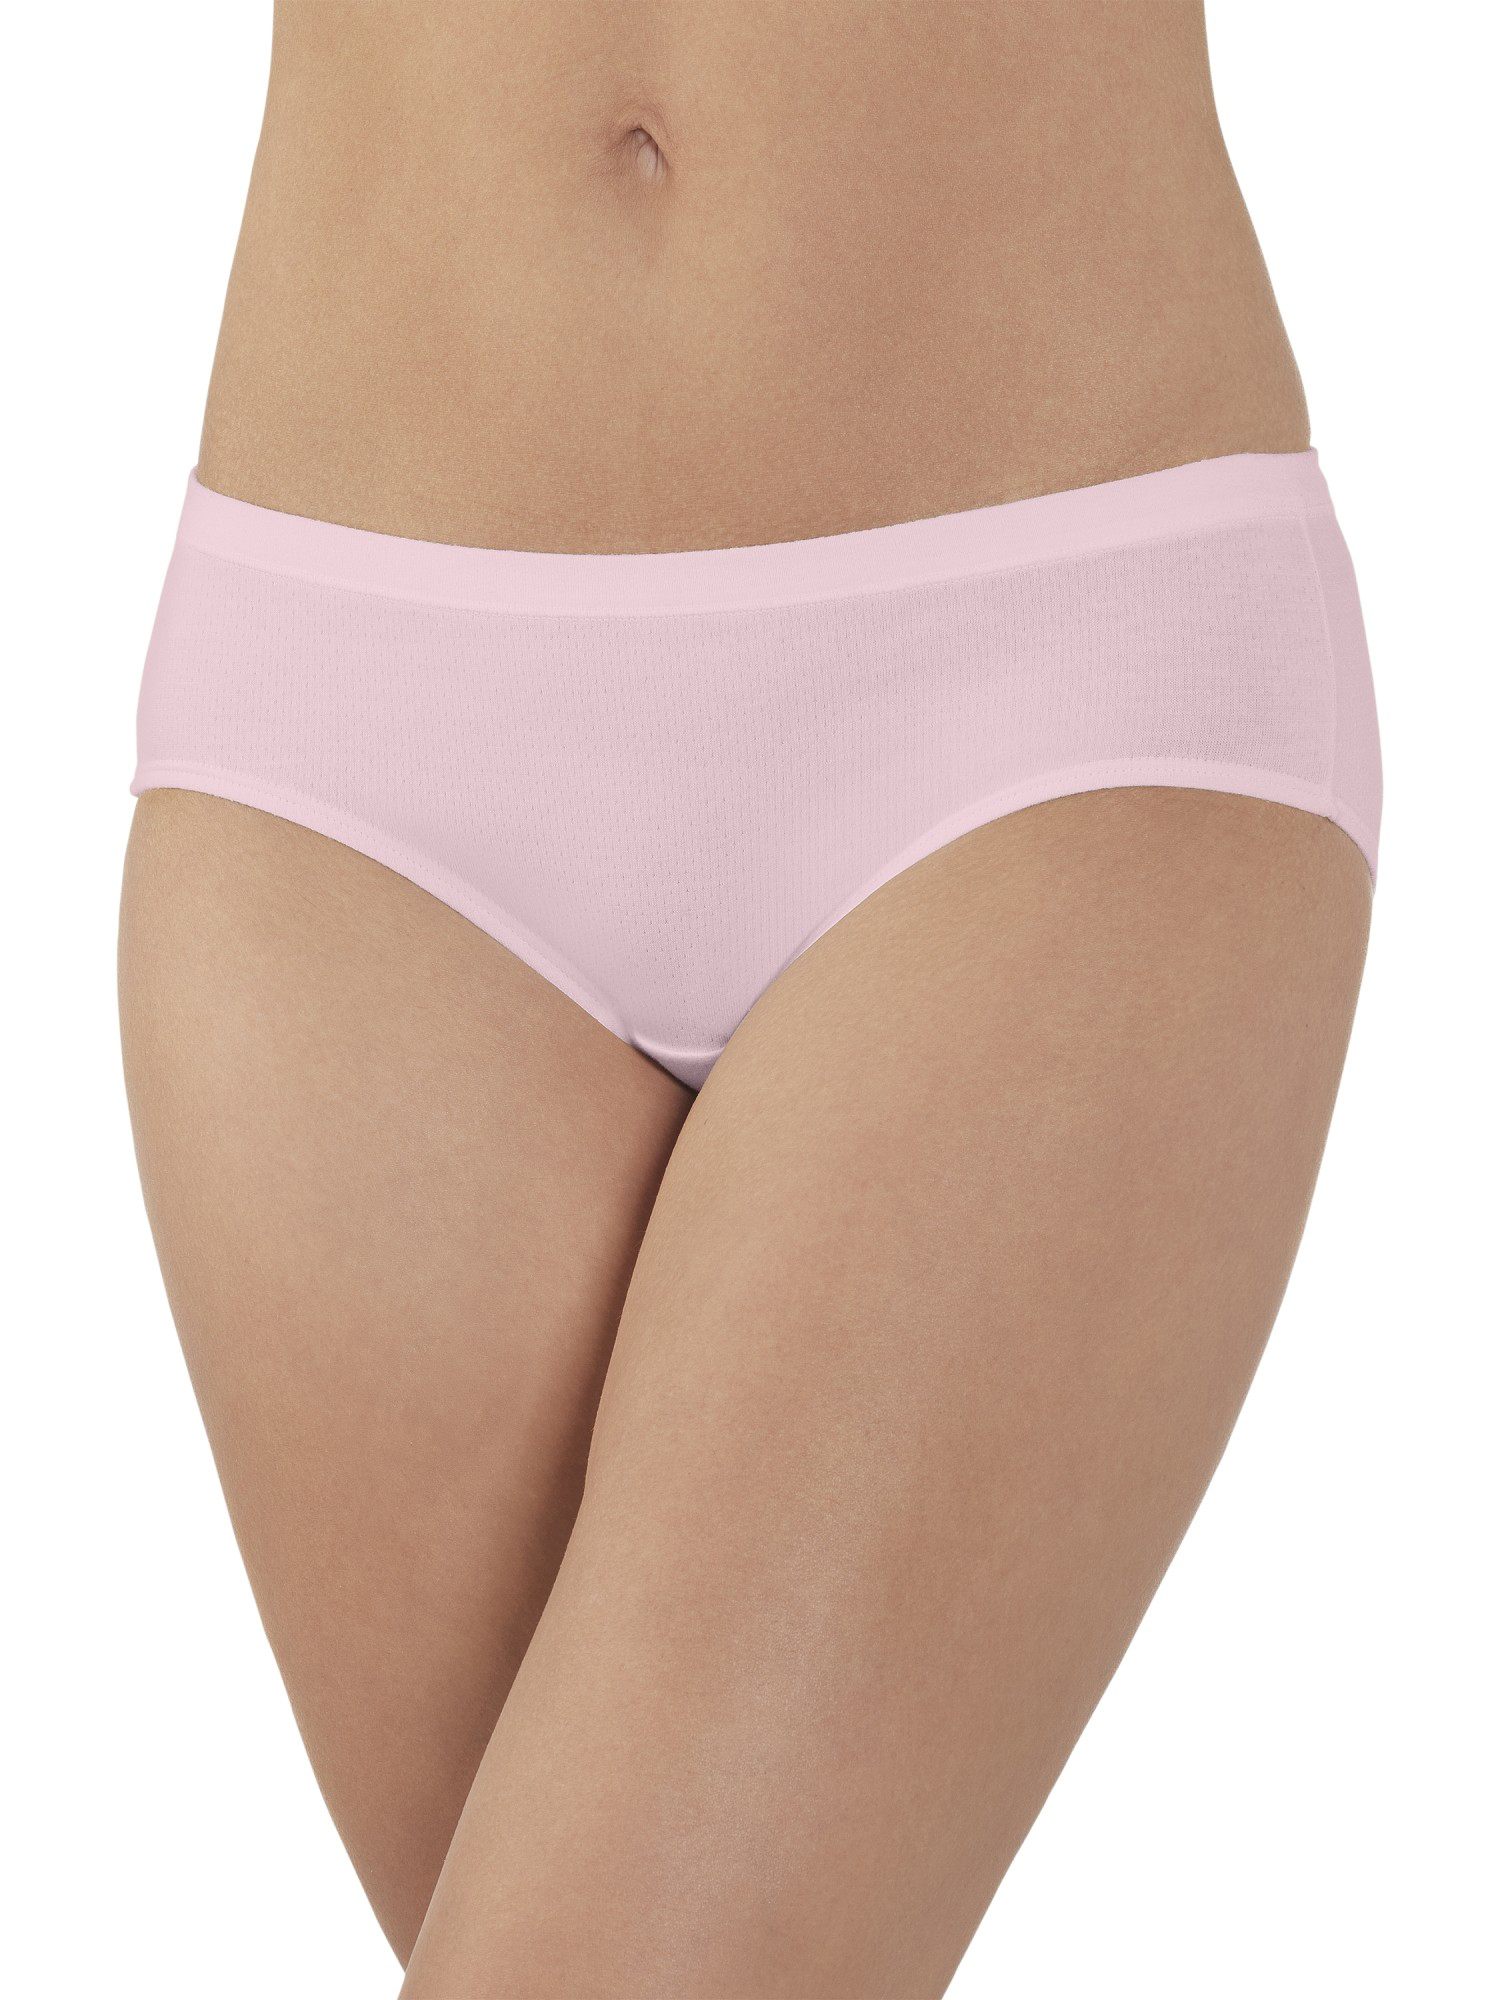 Women's Breathable Cotton-Mesh Hipster Panties - 4 Pack